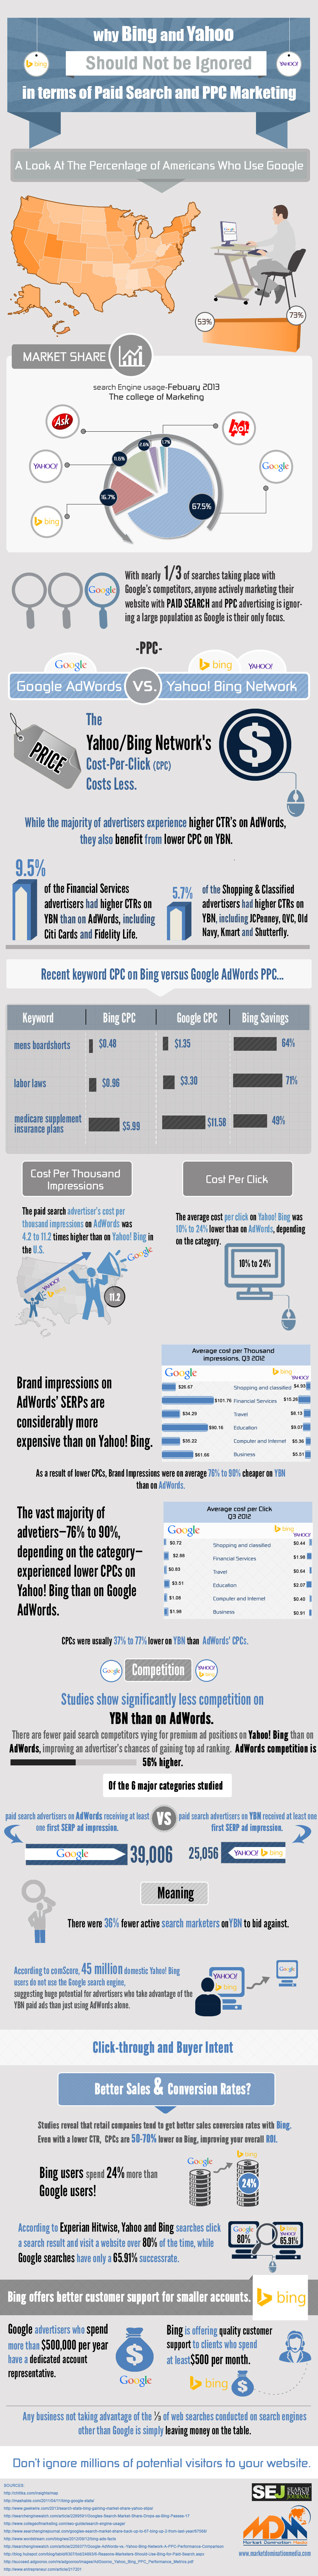 Infographic: Why Bing And Yahoo Should Not Be Ignored